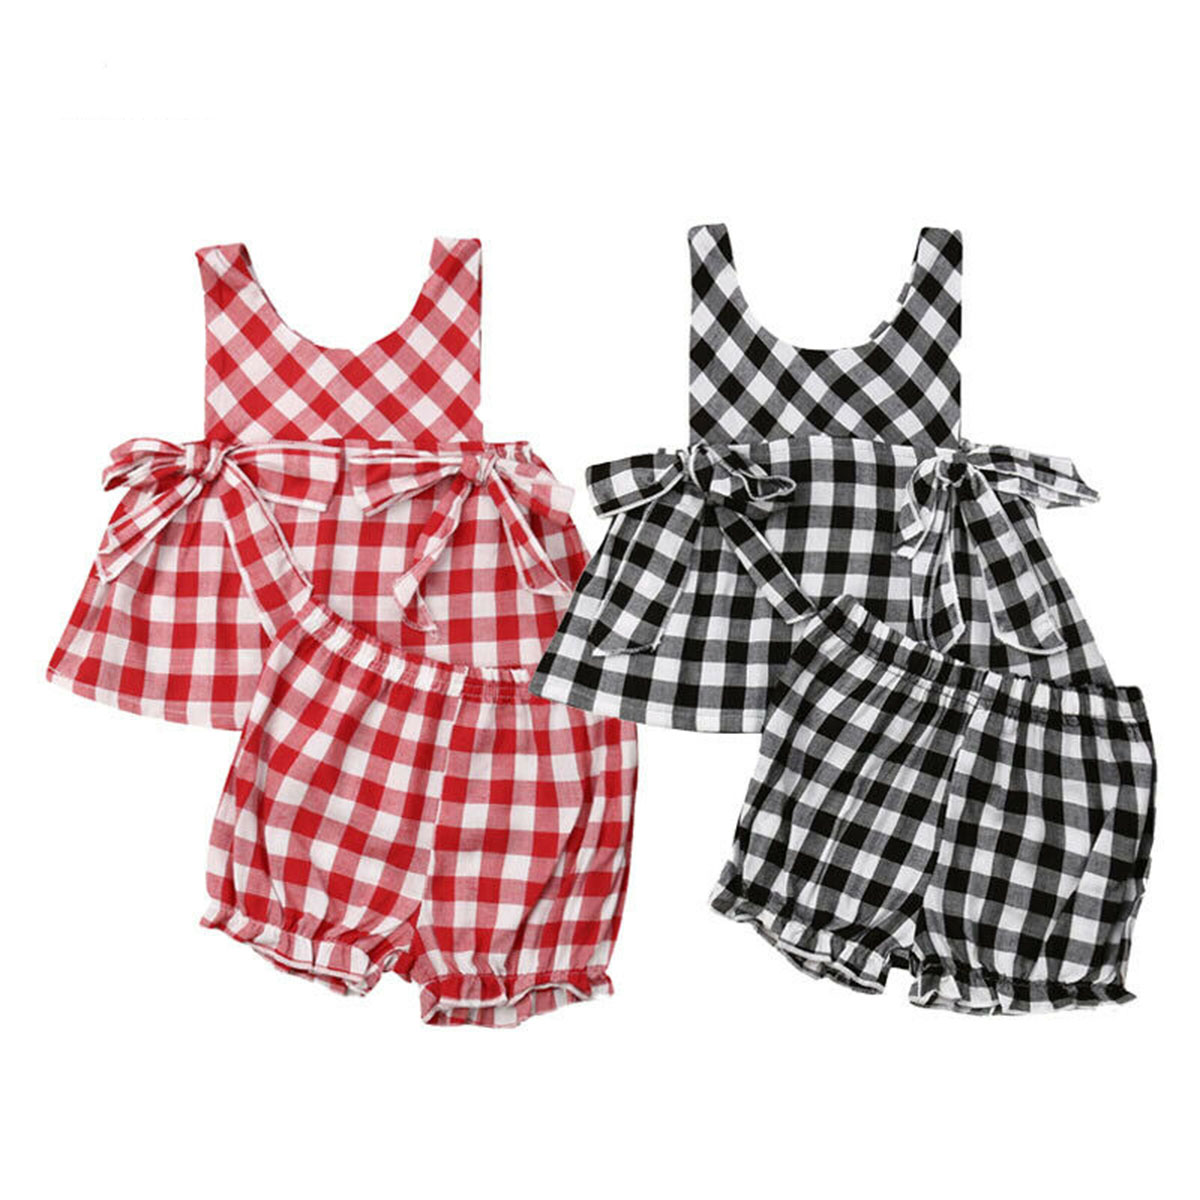 Canis Toddler Baby Girls Plaid Bowknot Romper Bodysuit Headband Outfits Clothes